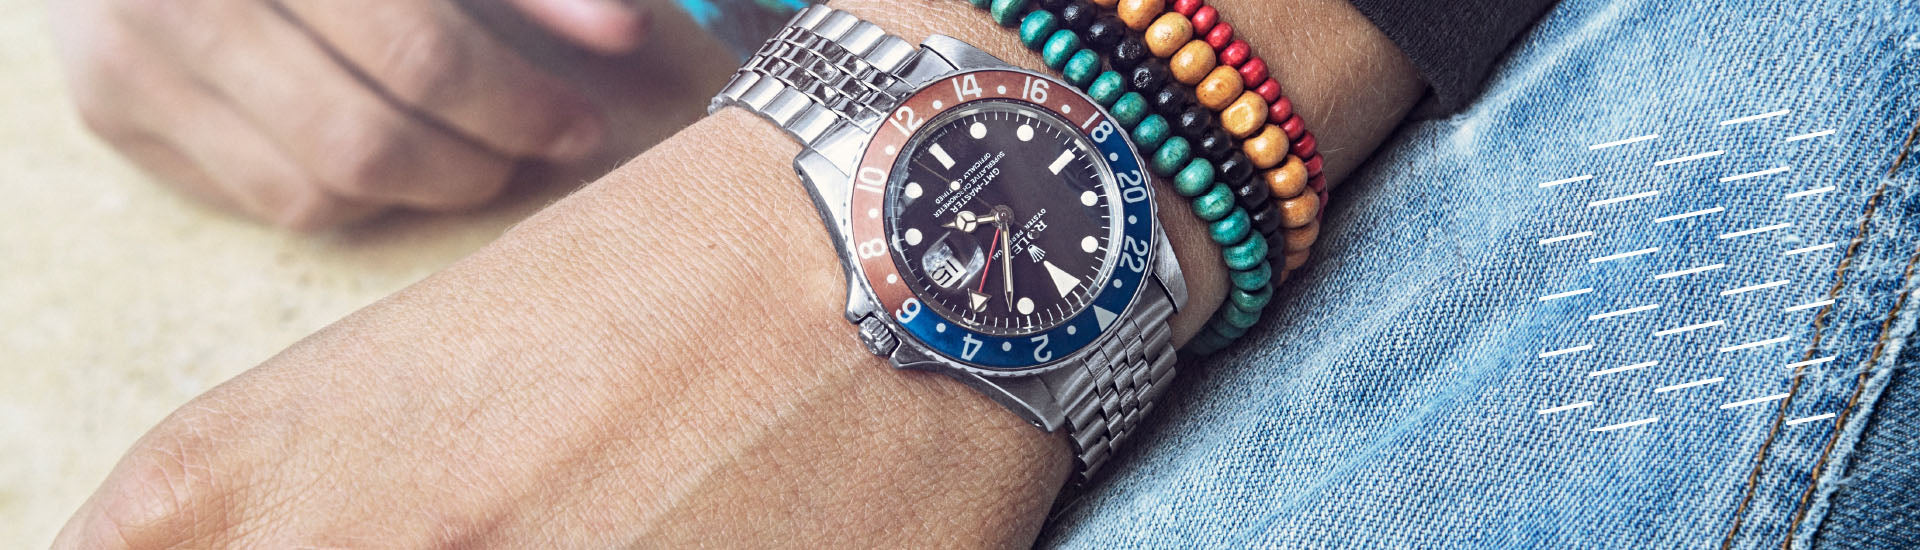 Finest vintage watches from Rolex, Omega, Here, Tudor , Patek Philippe